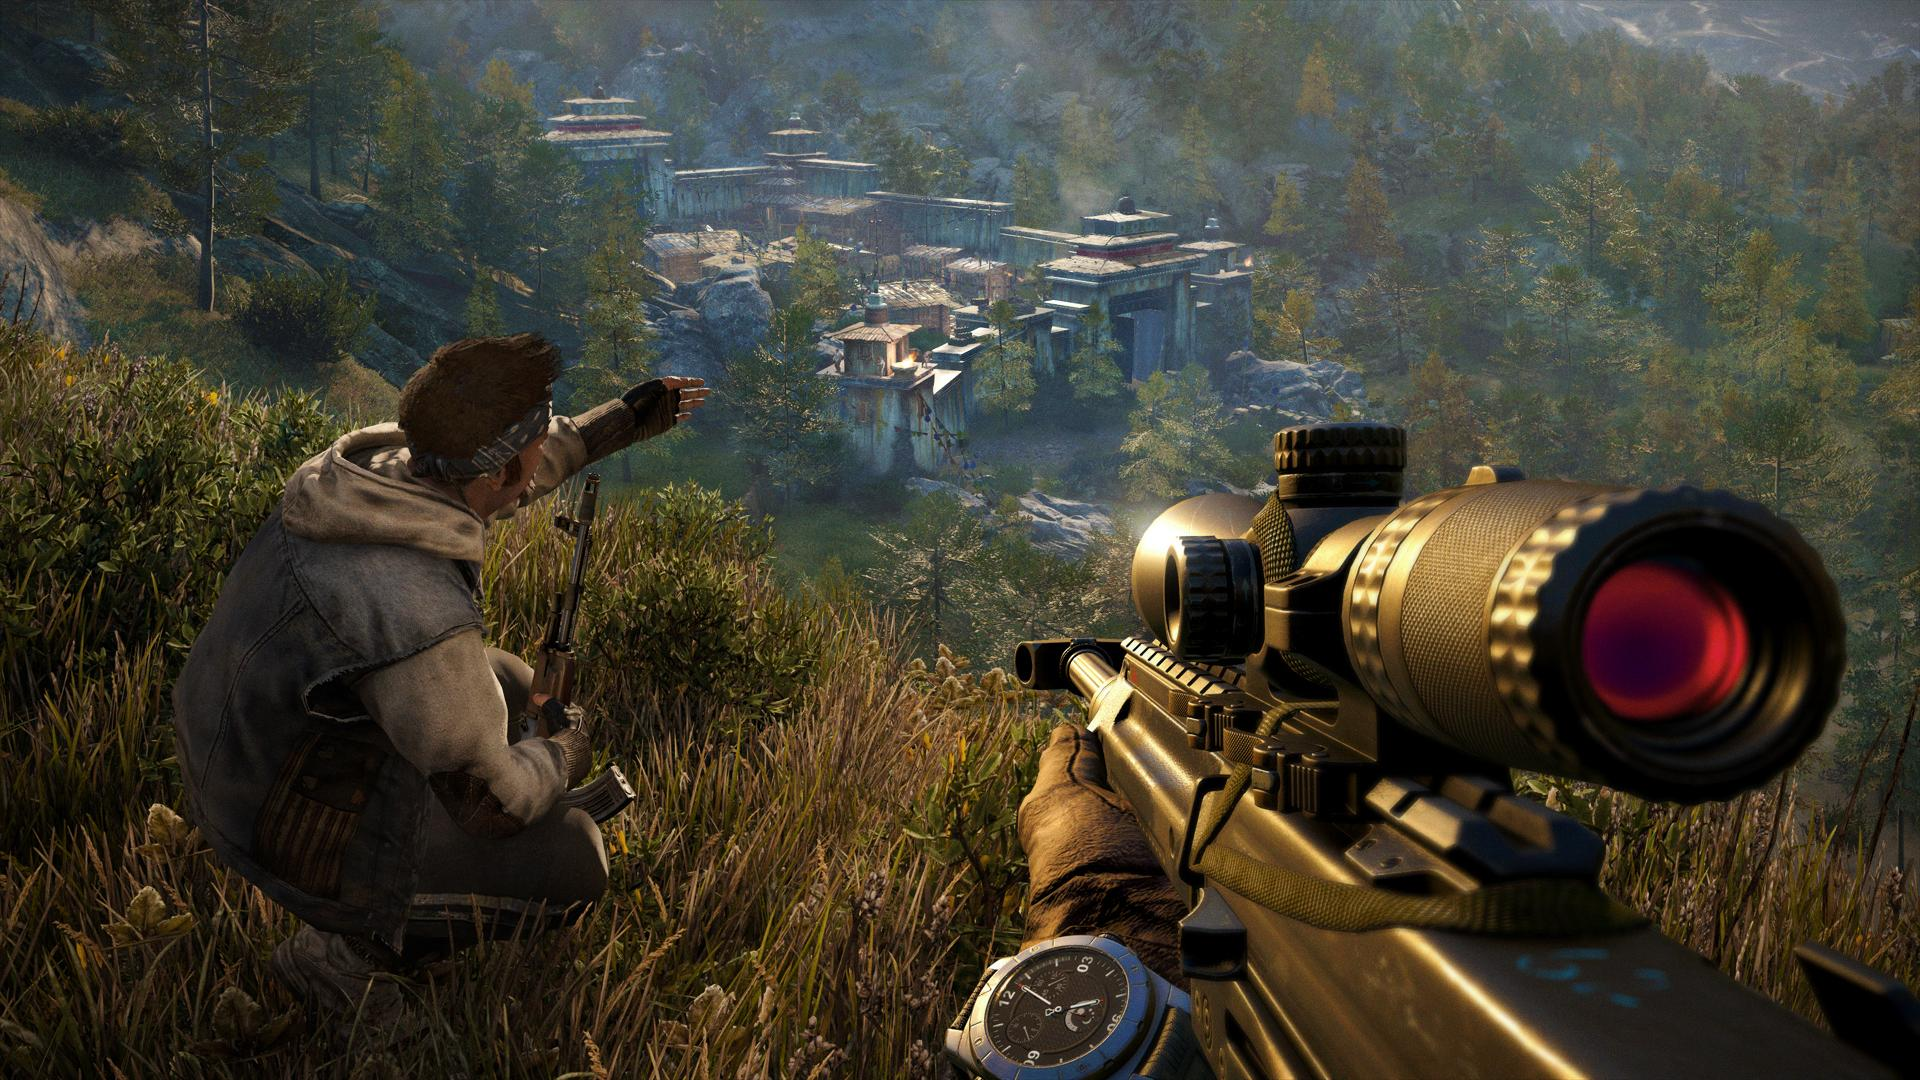 far cry 4 torrent download pc crack